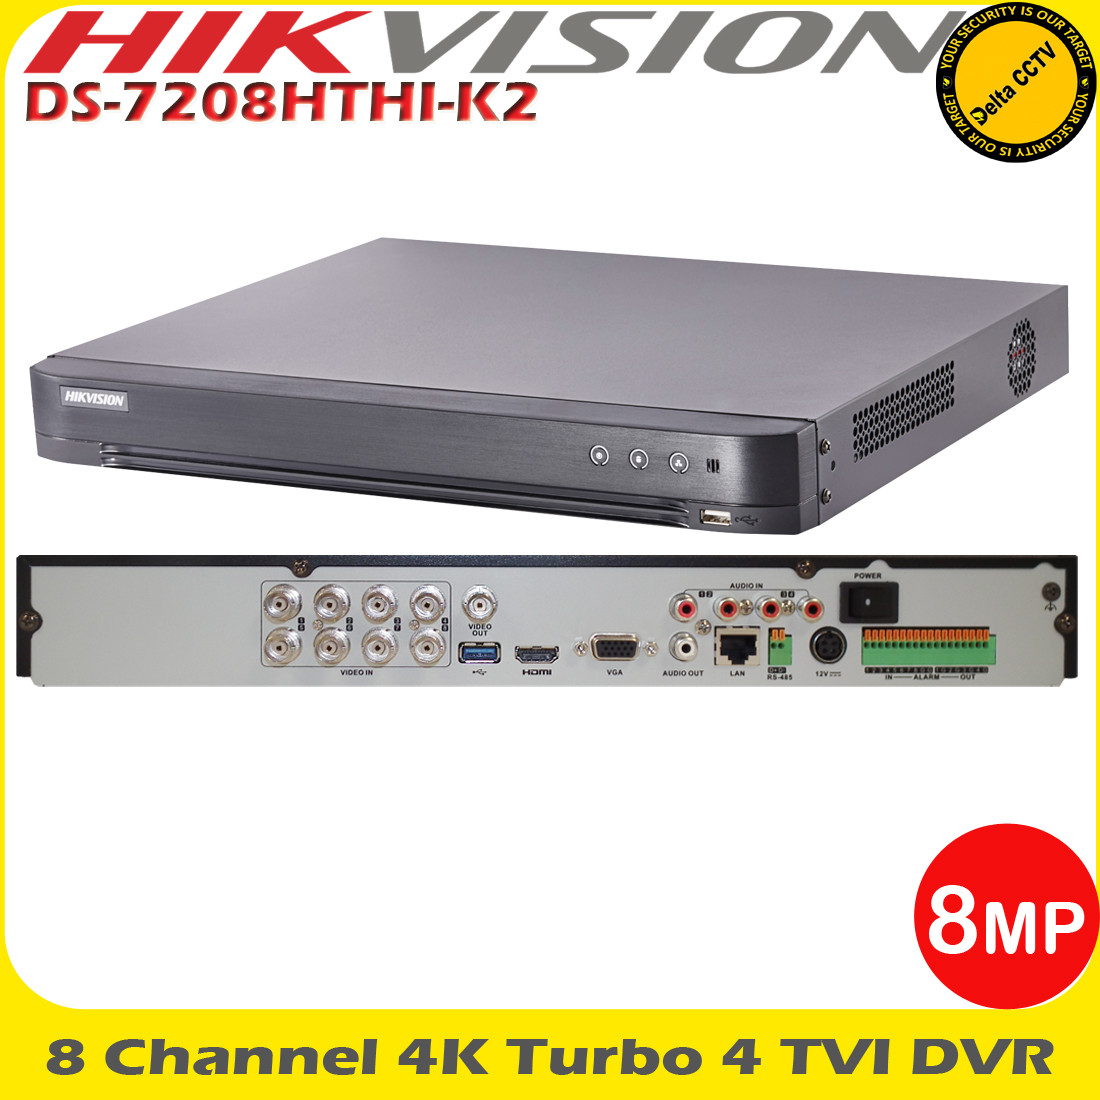 Hikvision DS-7208HTHI-K2 8 Channel TVI Turbo 4 0 8MP DVR CCTV video